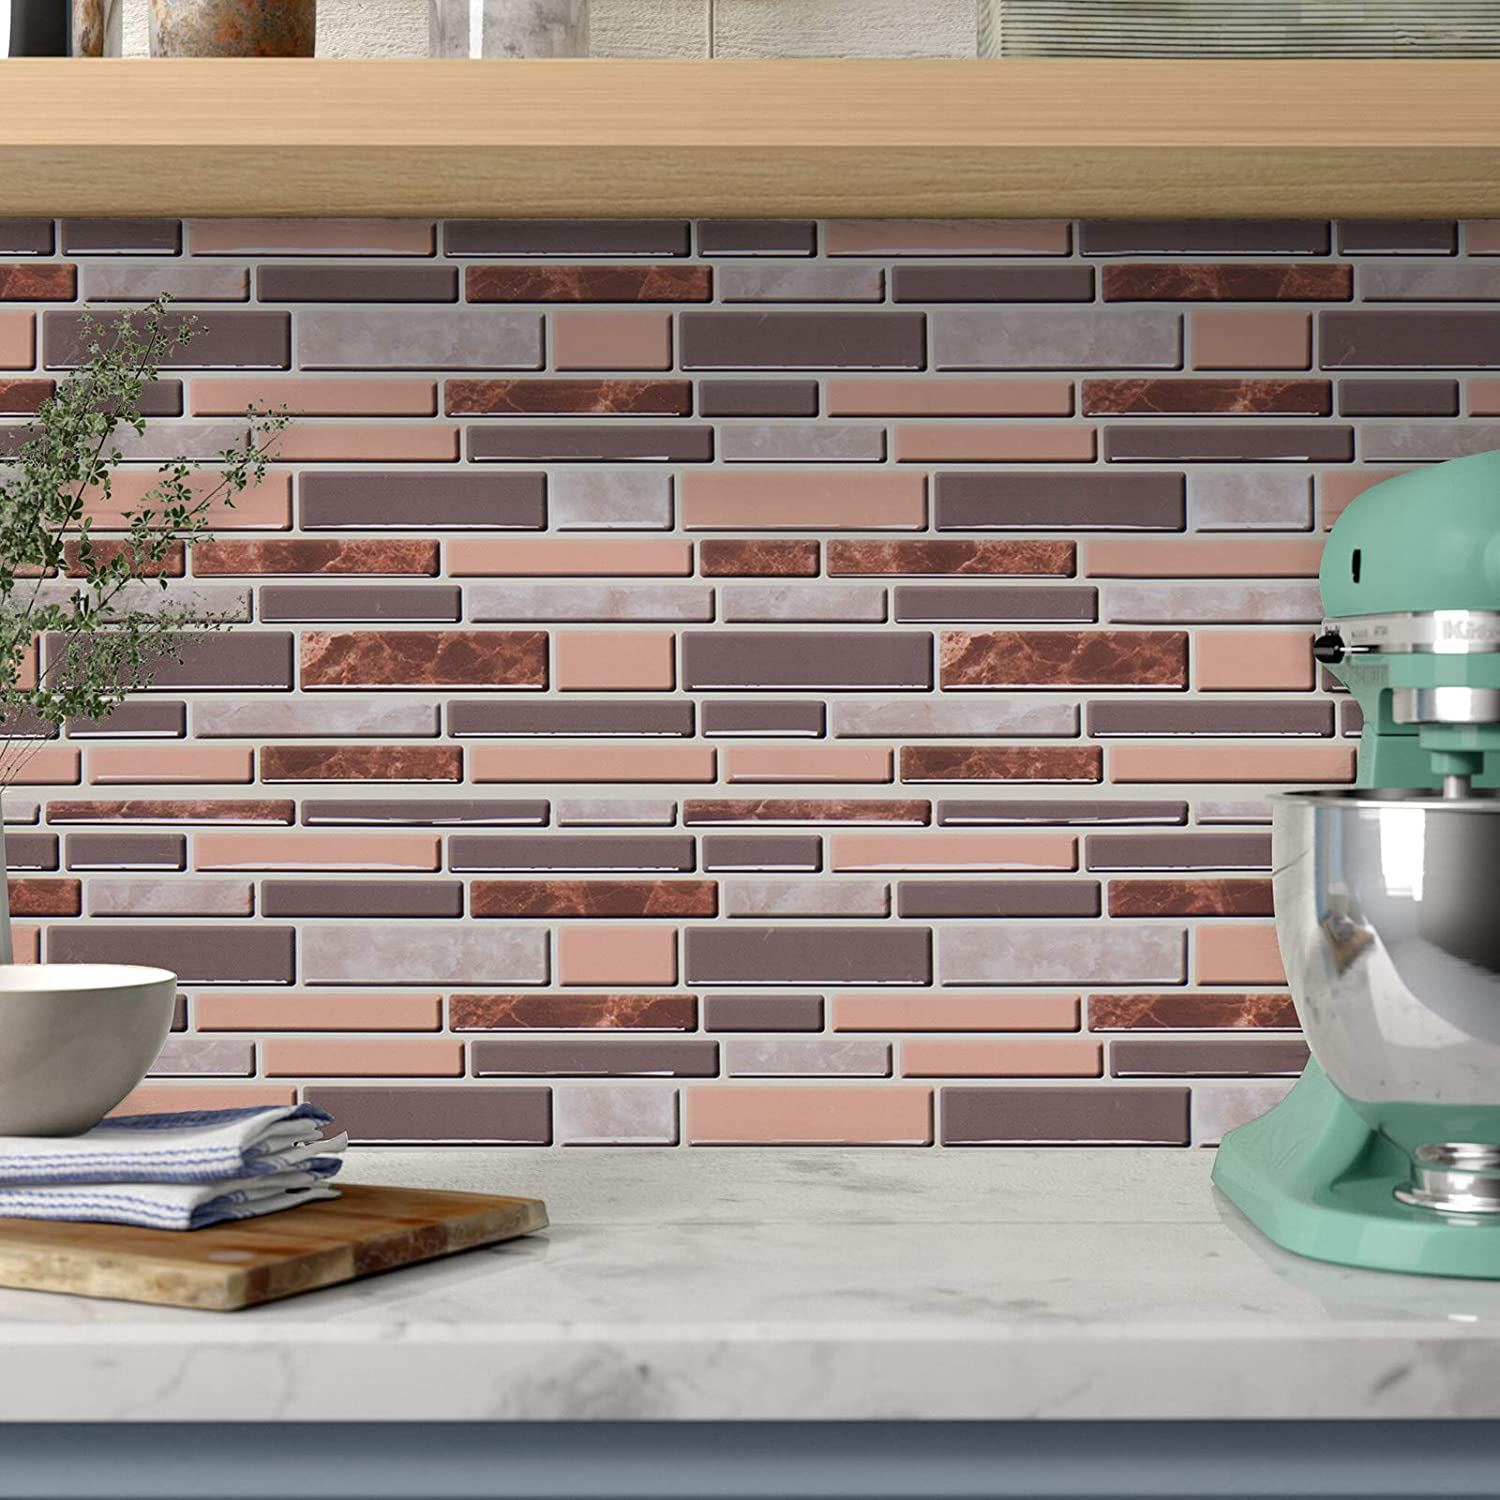 """Gray and Brown Kitchen Wallpaper Peel and Stick Wallpaper Bathroom  Wallpaper Countertop Removable Wallpaper for Kitchen 9.9""""x 99.9""""  Waterproof Self ..."""